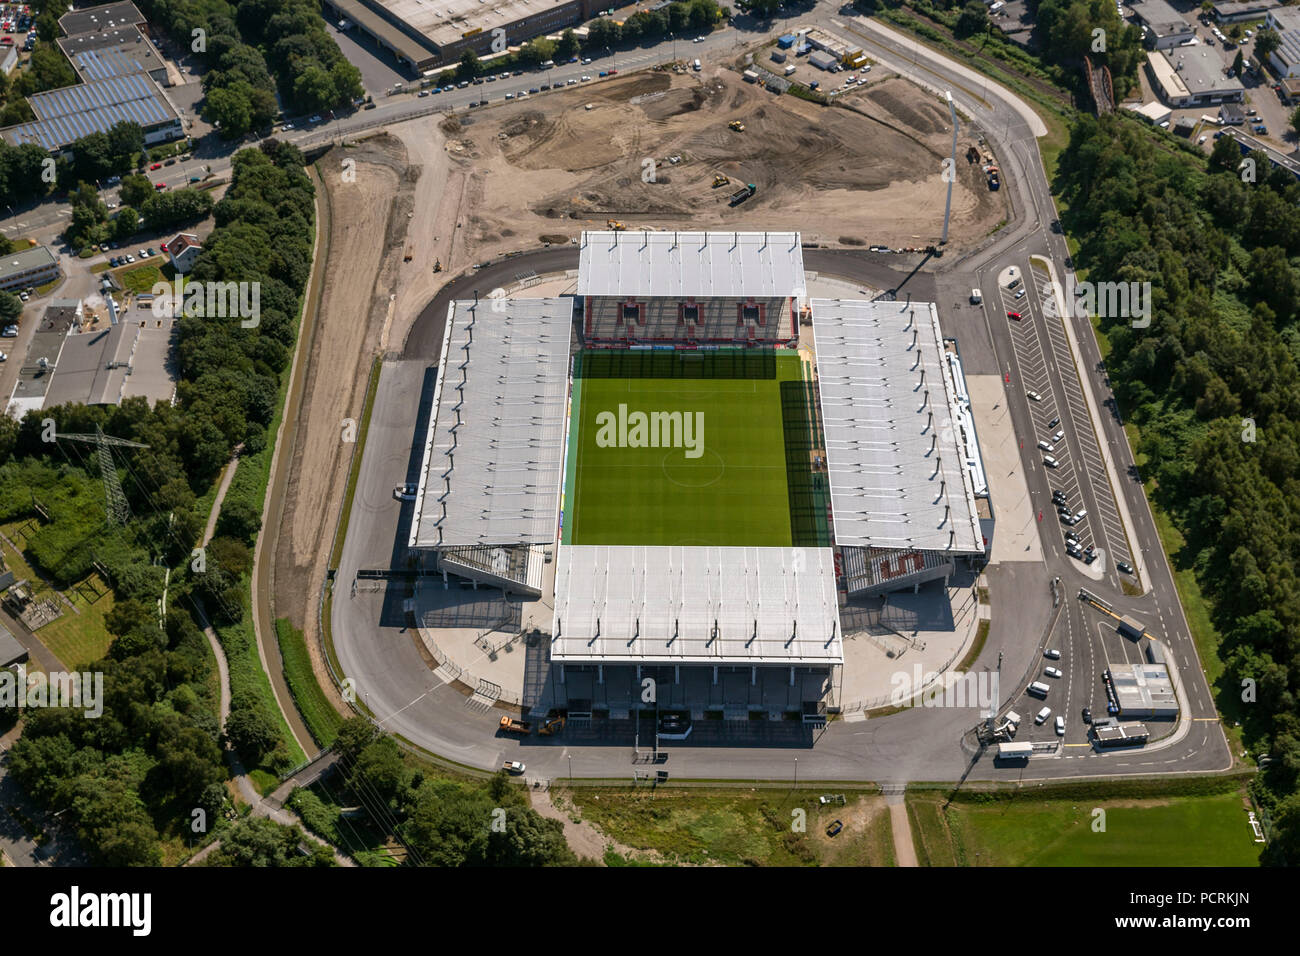 Rot-Weiß-Essen stadium at Hafenstraße, Essen, Ruhr area, North Rhine-Westphalia, Germany, Europe, aerial view - Stock Image